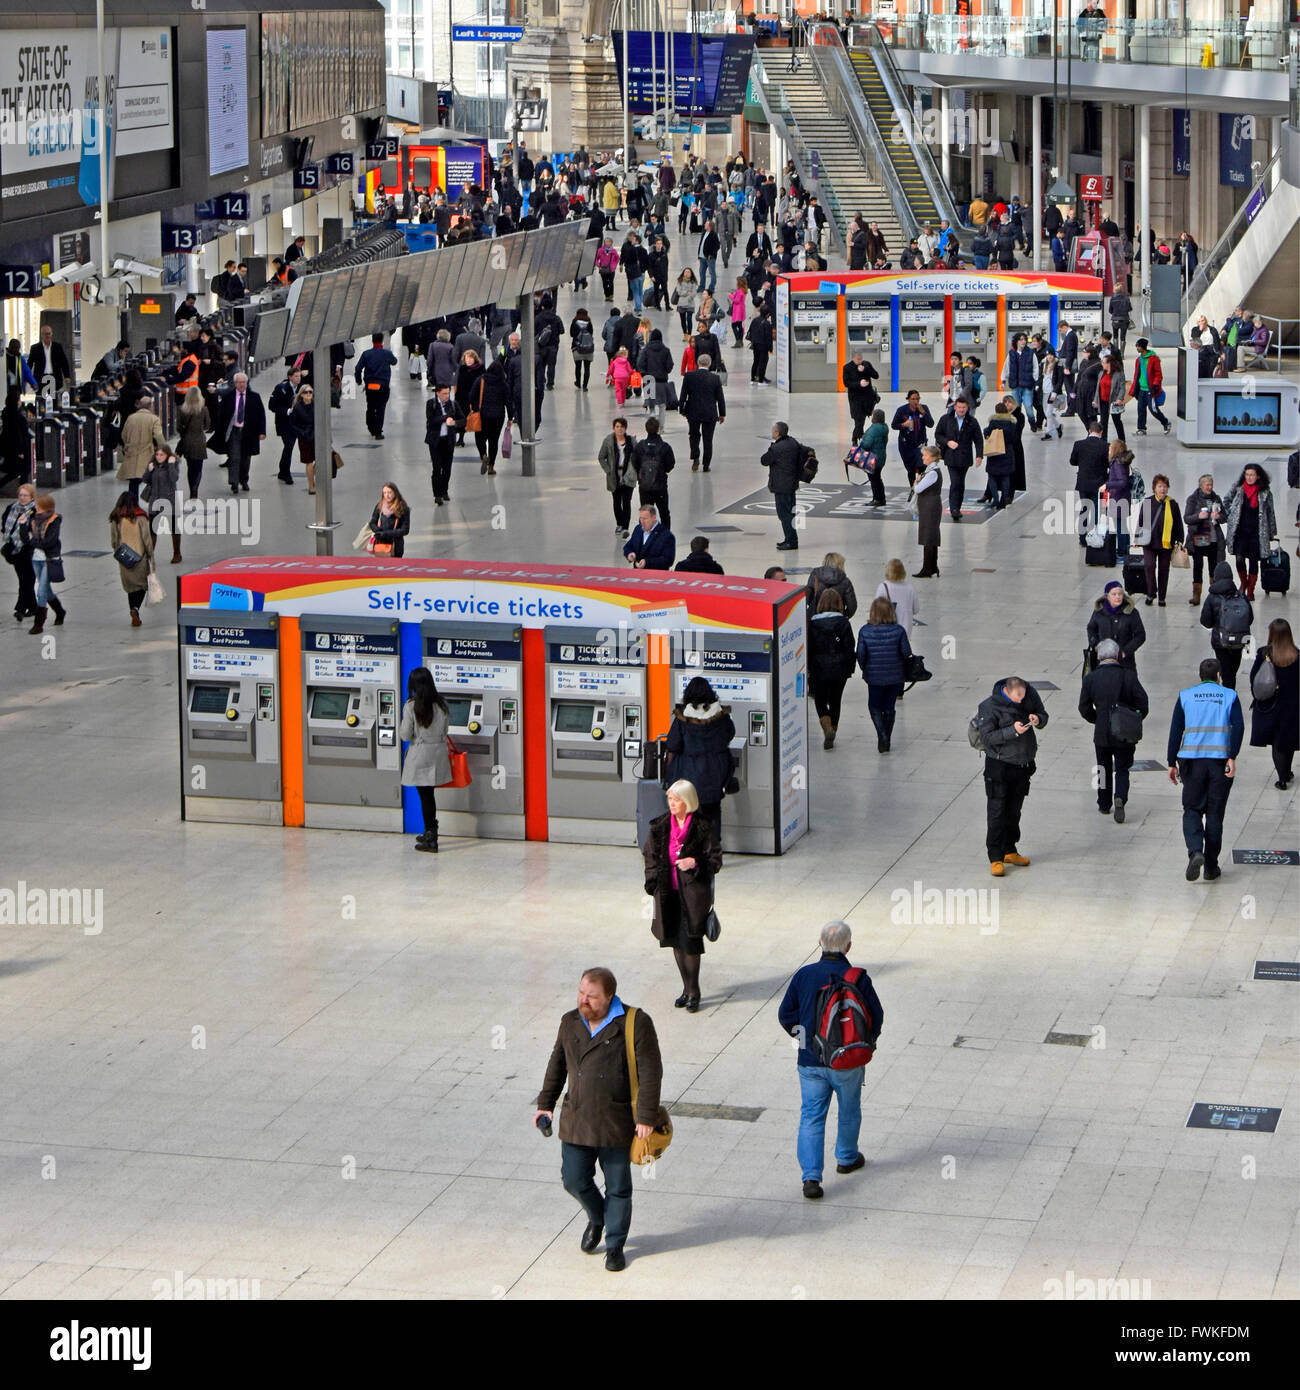 View from above looking down on commuters on London Waterloo station concourse with two rows of self service ticket - Stock Image